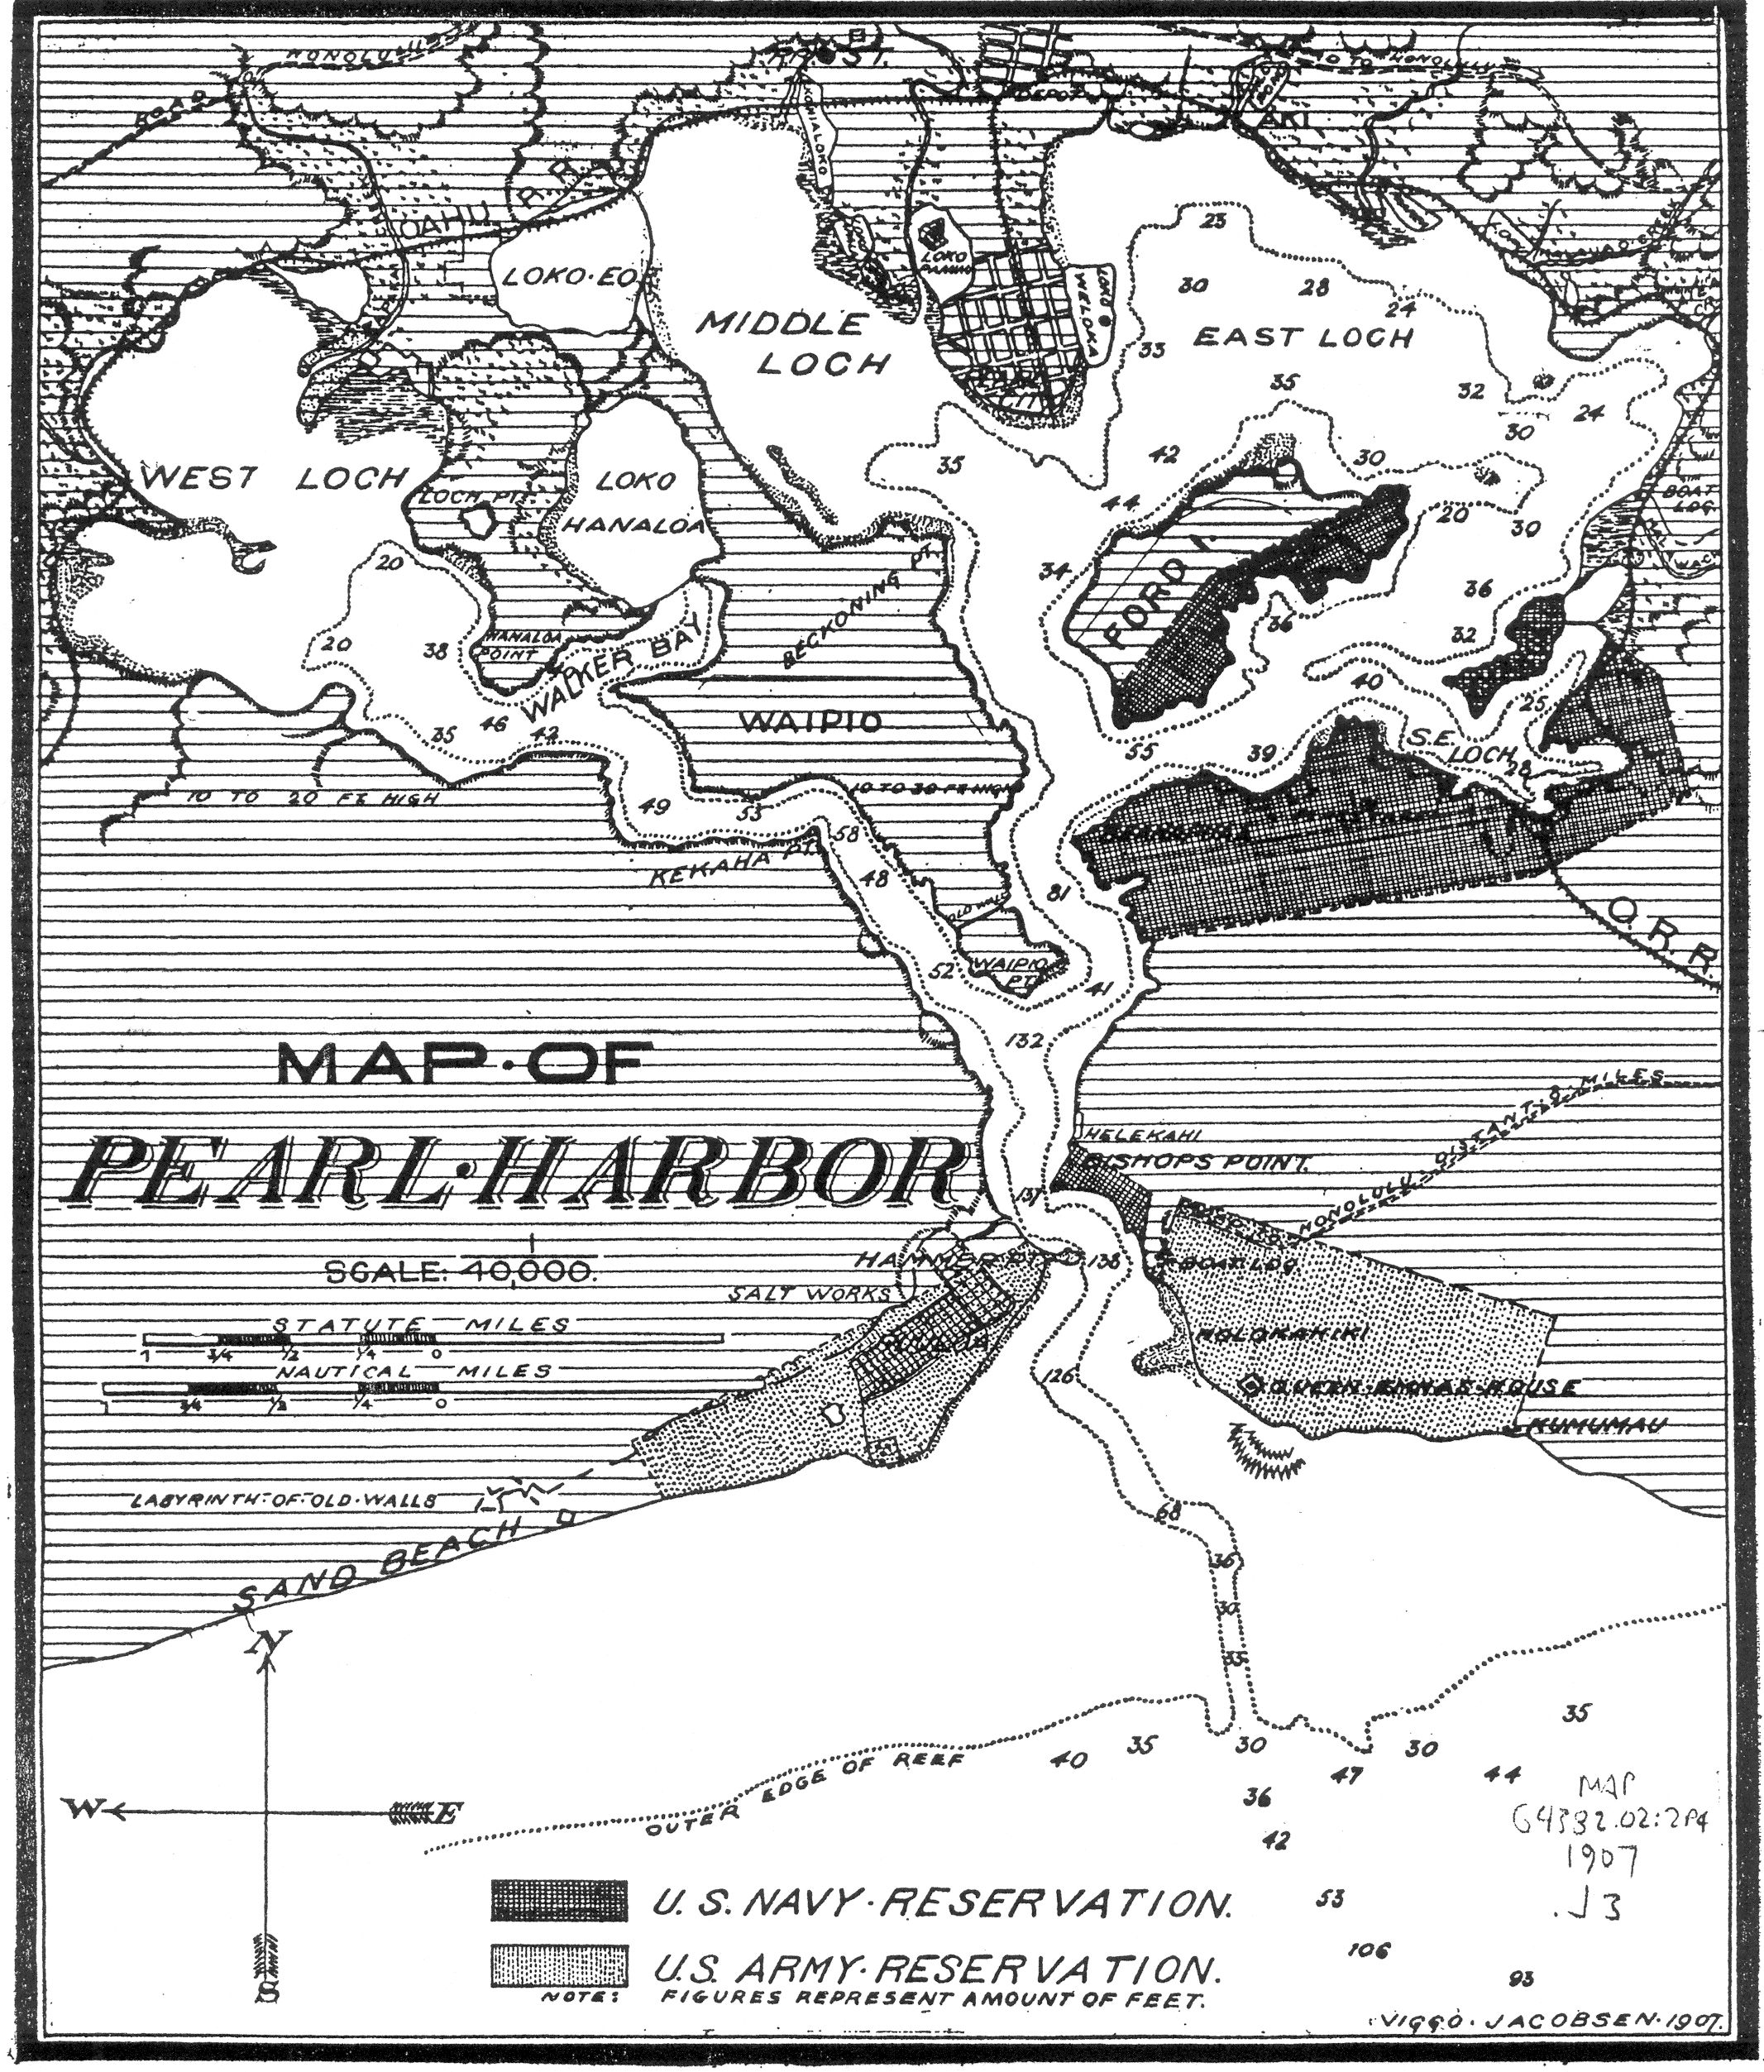 1907 Map Of Pearl Harbor Showing Navy And Army Reservations